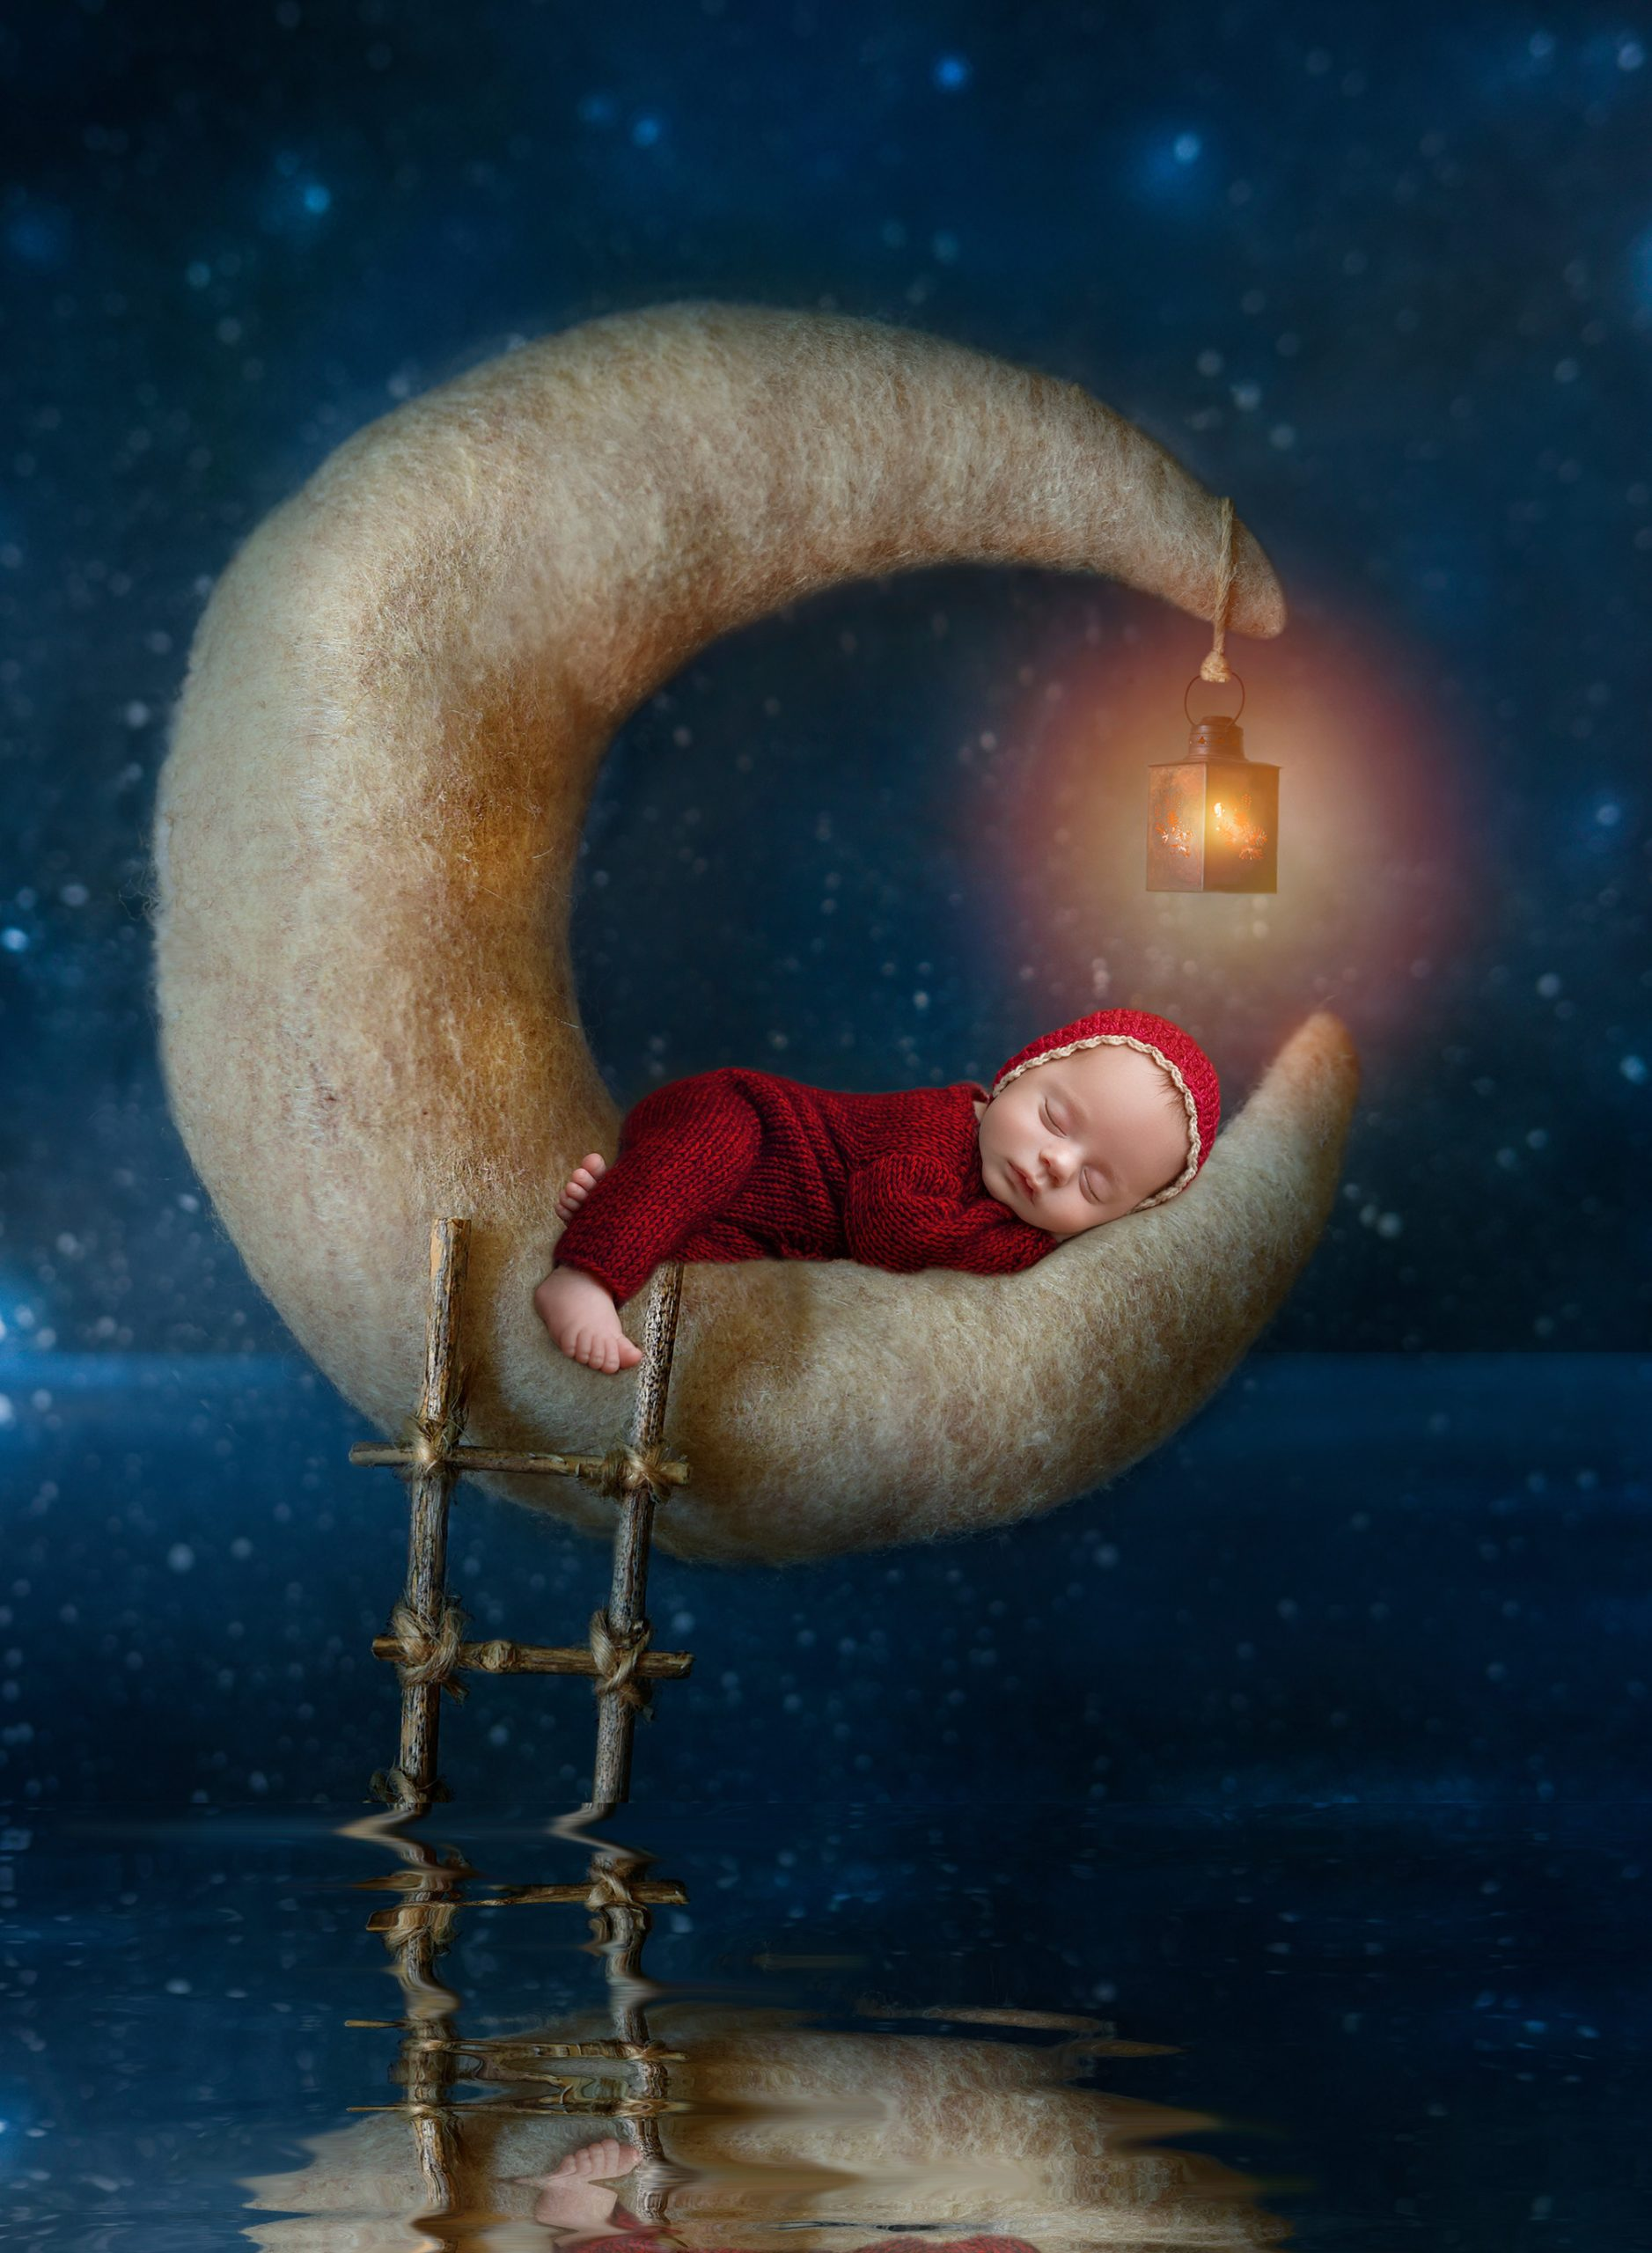 award winning newborn photography newborn baby boy dressed in red asleep on a crescent moon shadowing the water on a starry background